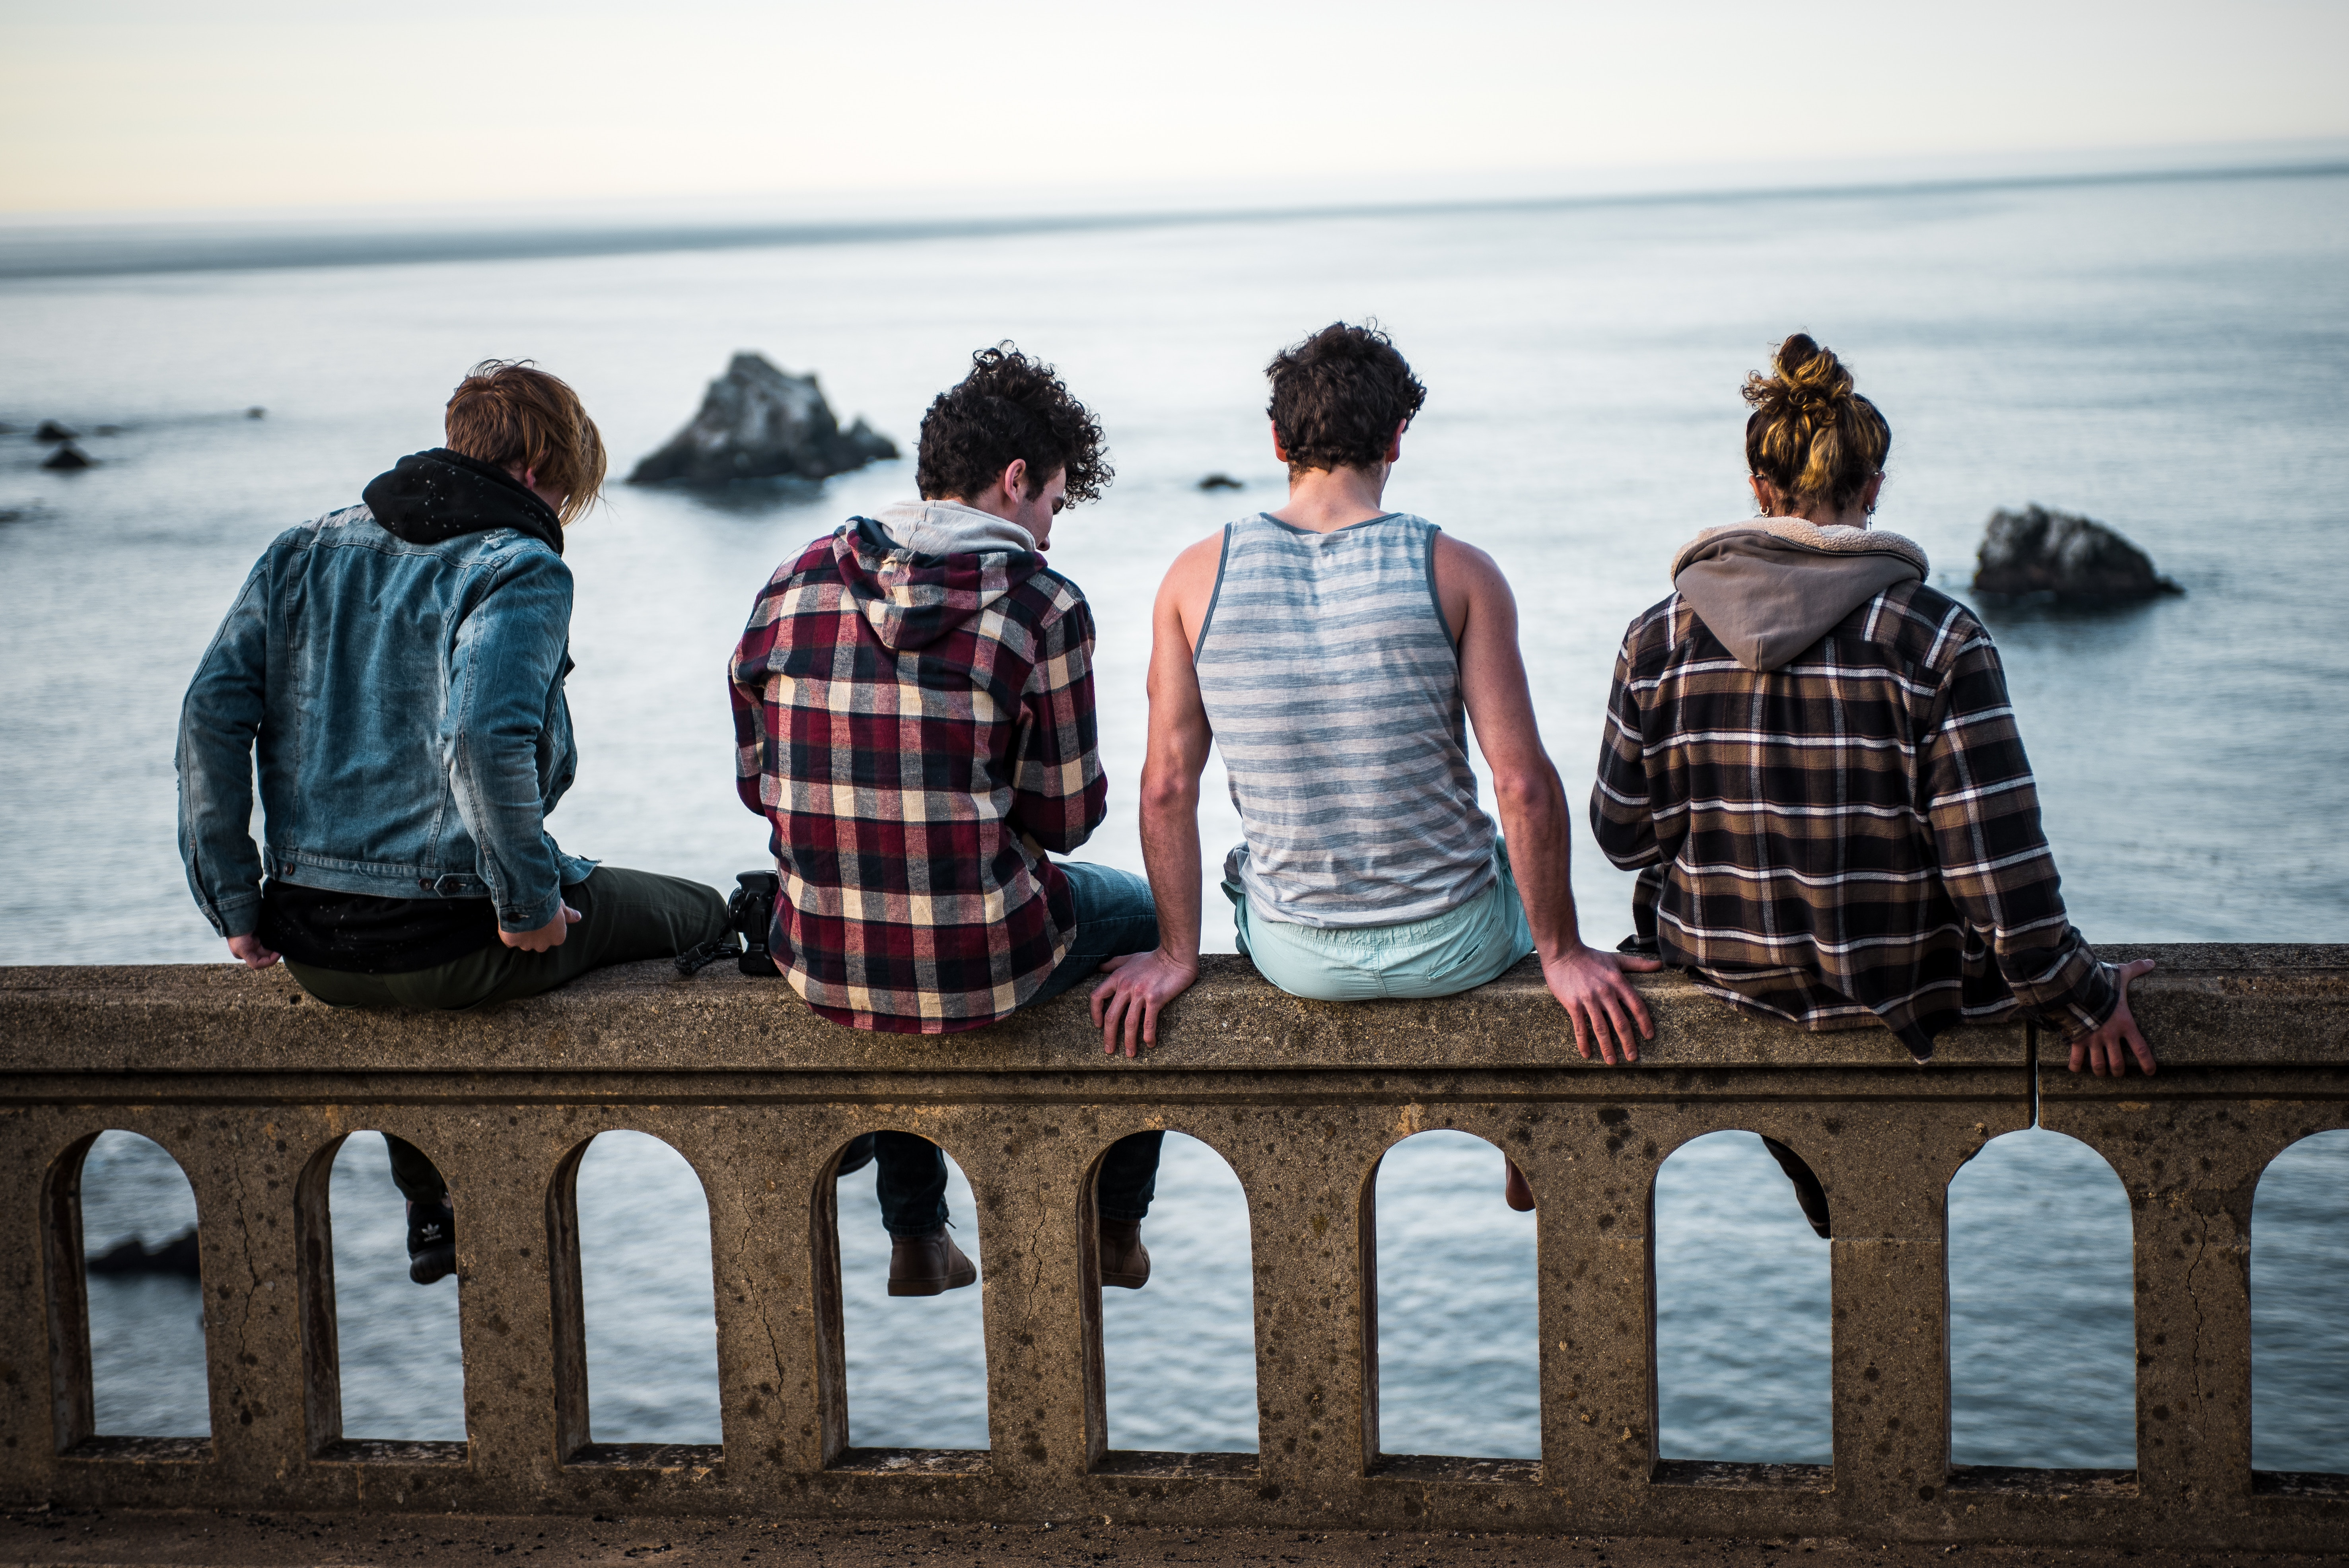 4 people sitting on a fence